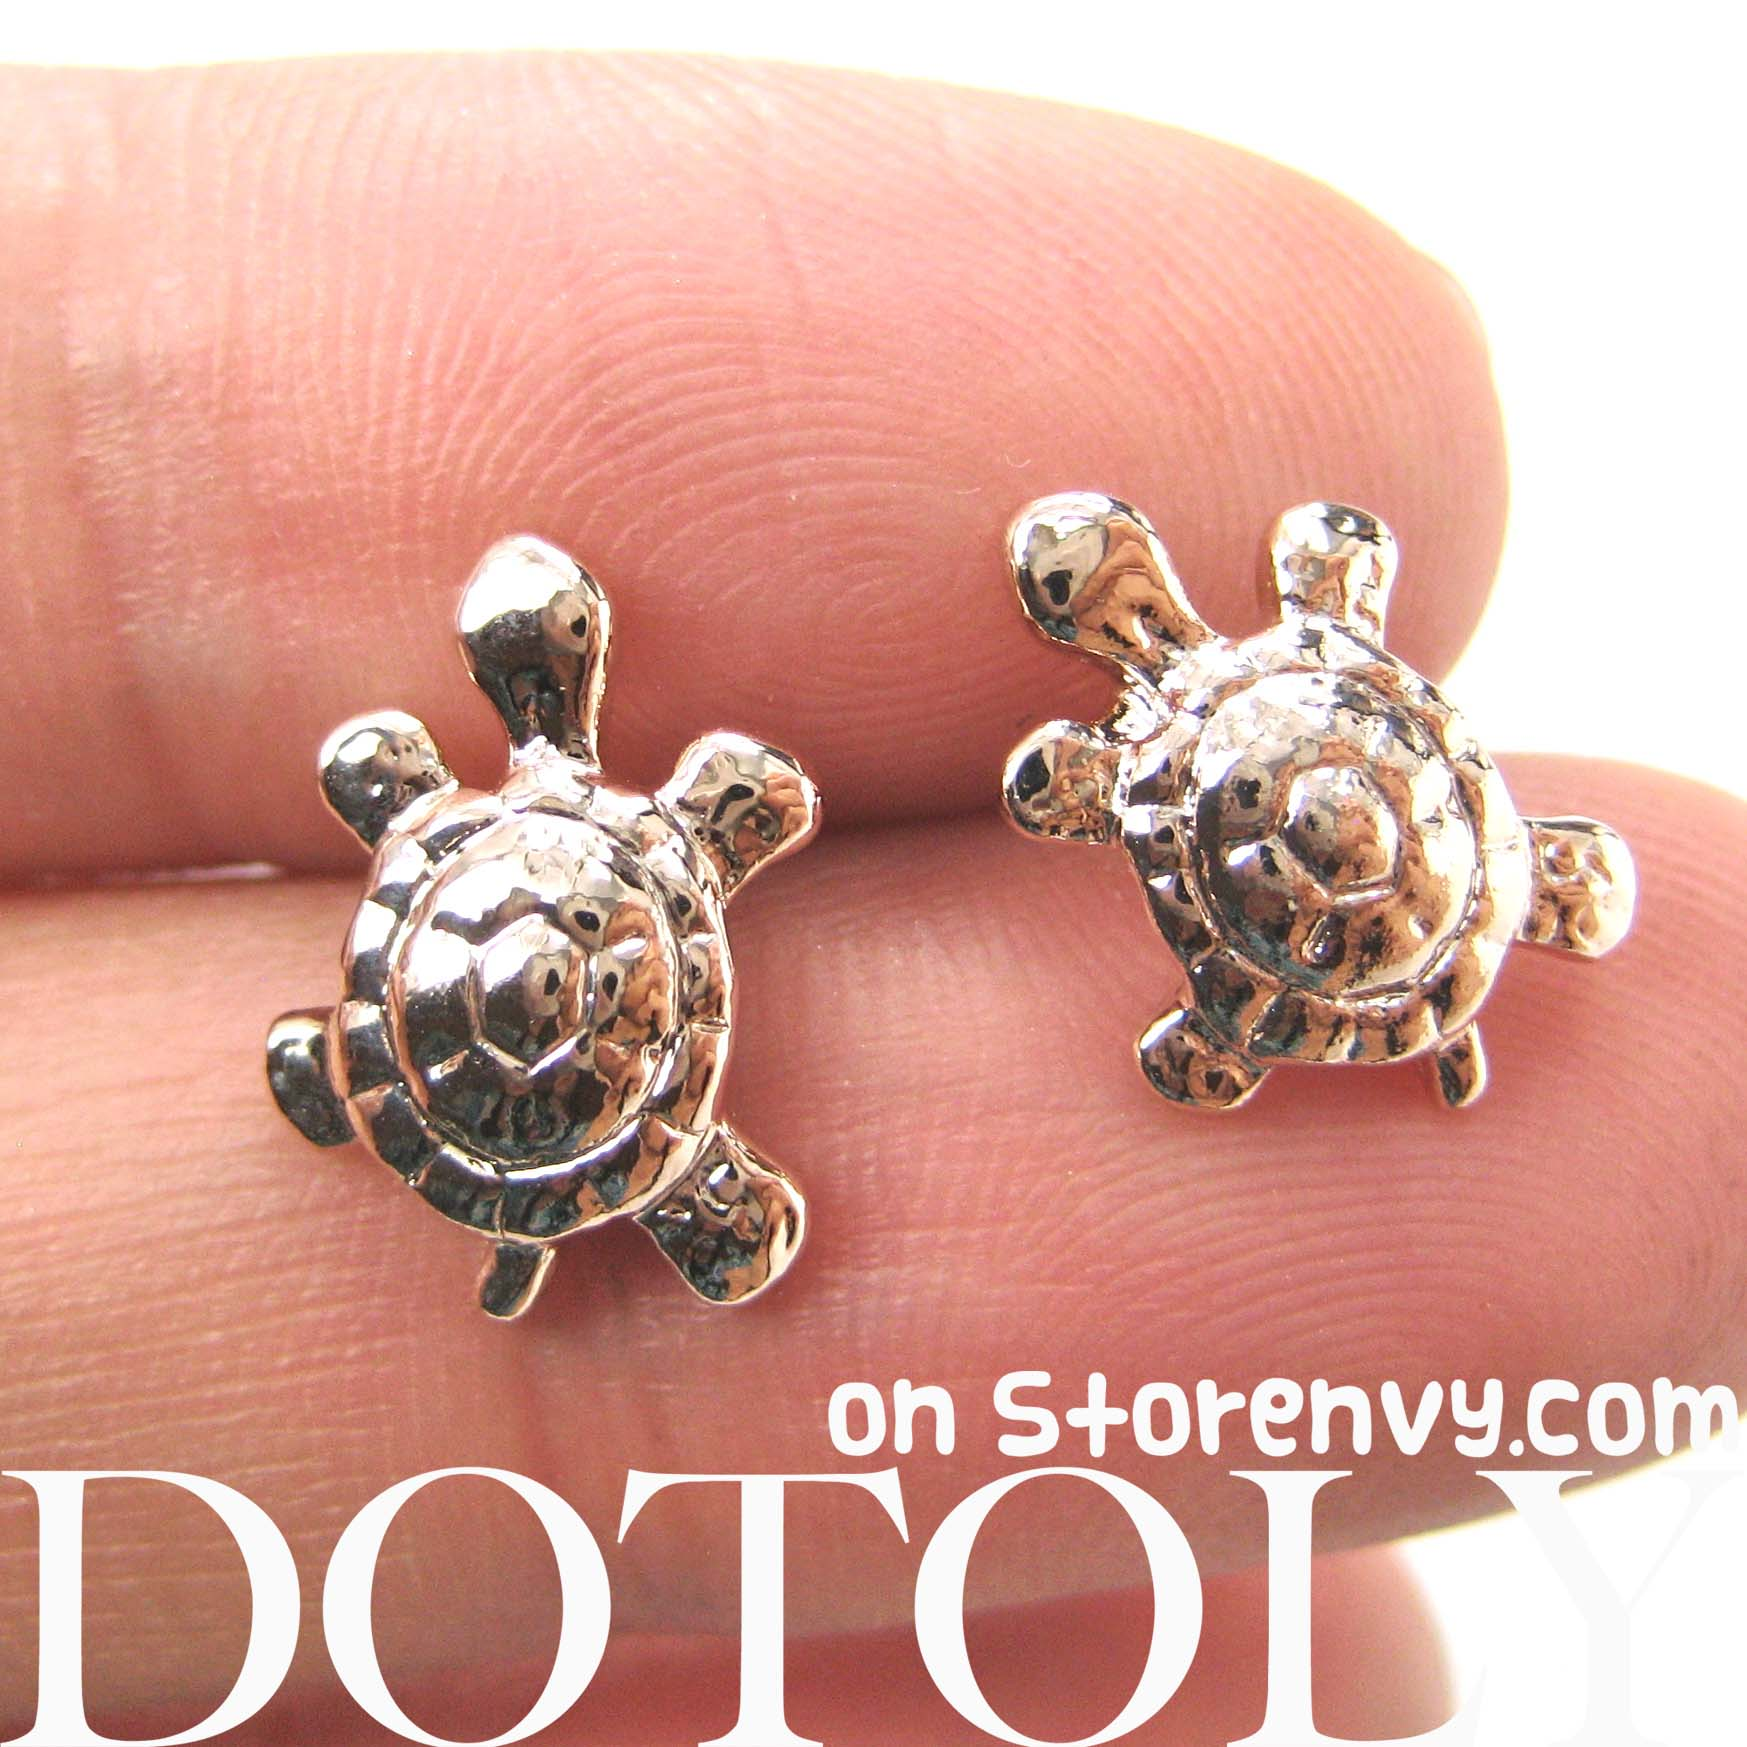 turtle alibaba earrings com gift top dropshipping jewelry from sea free for epacket group stud in accessories selling item blue on aliexpress white with